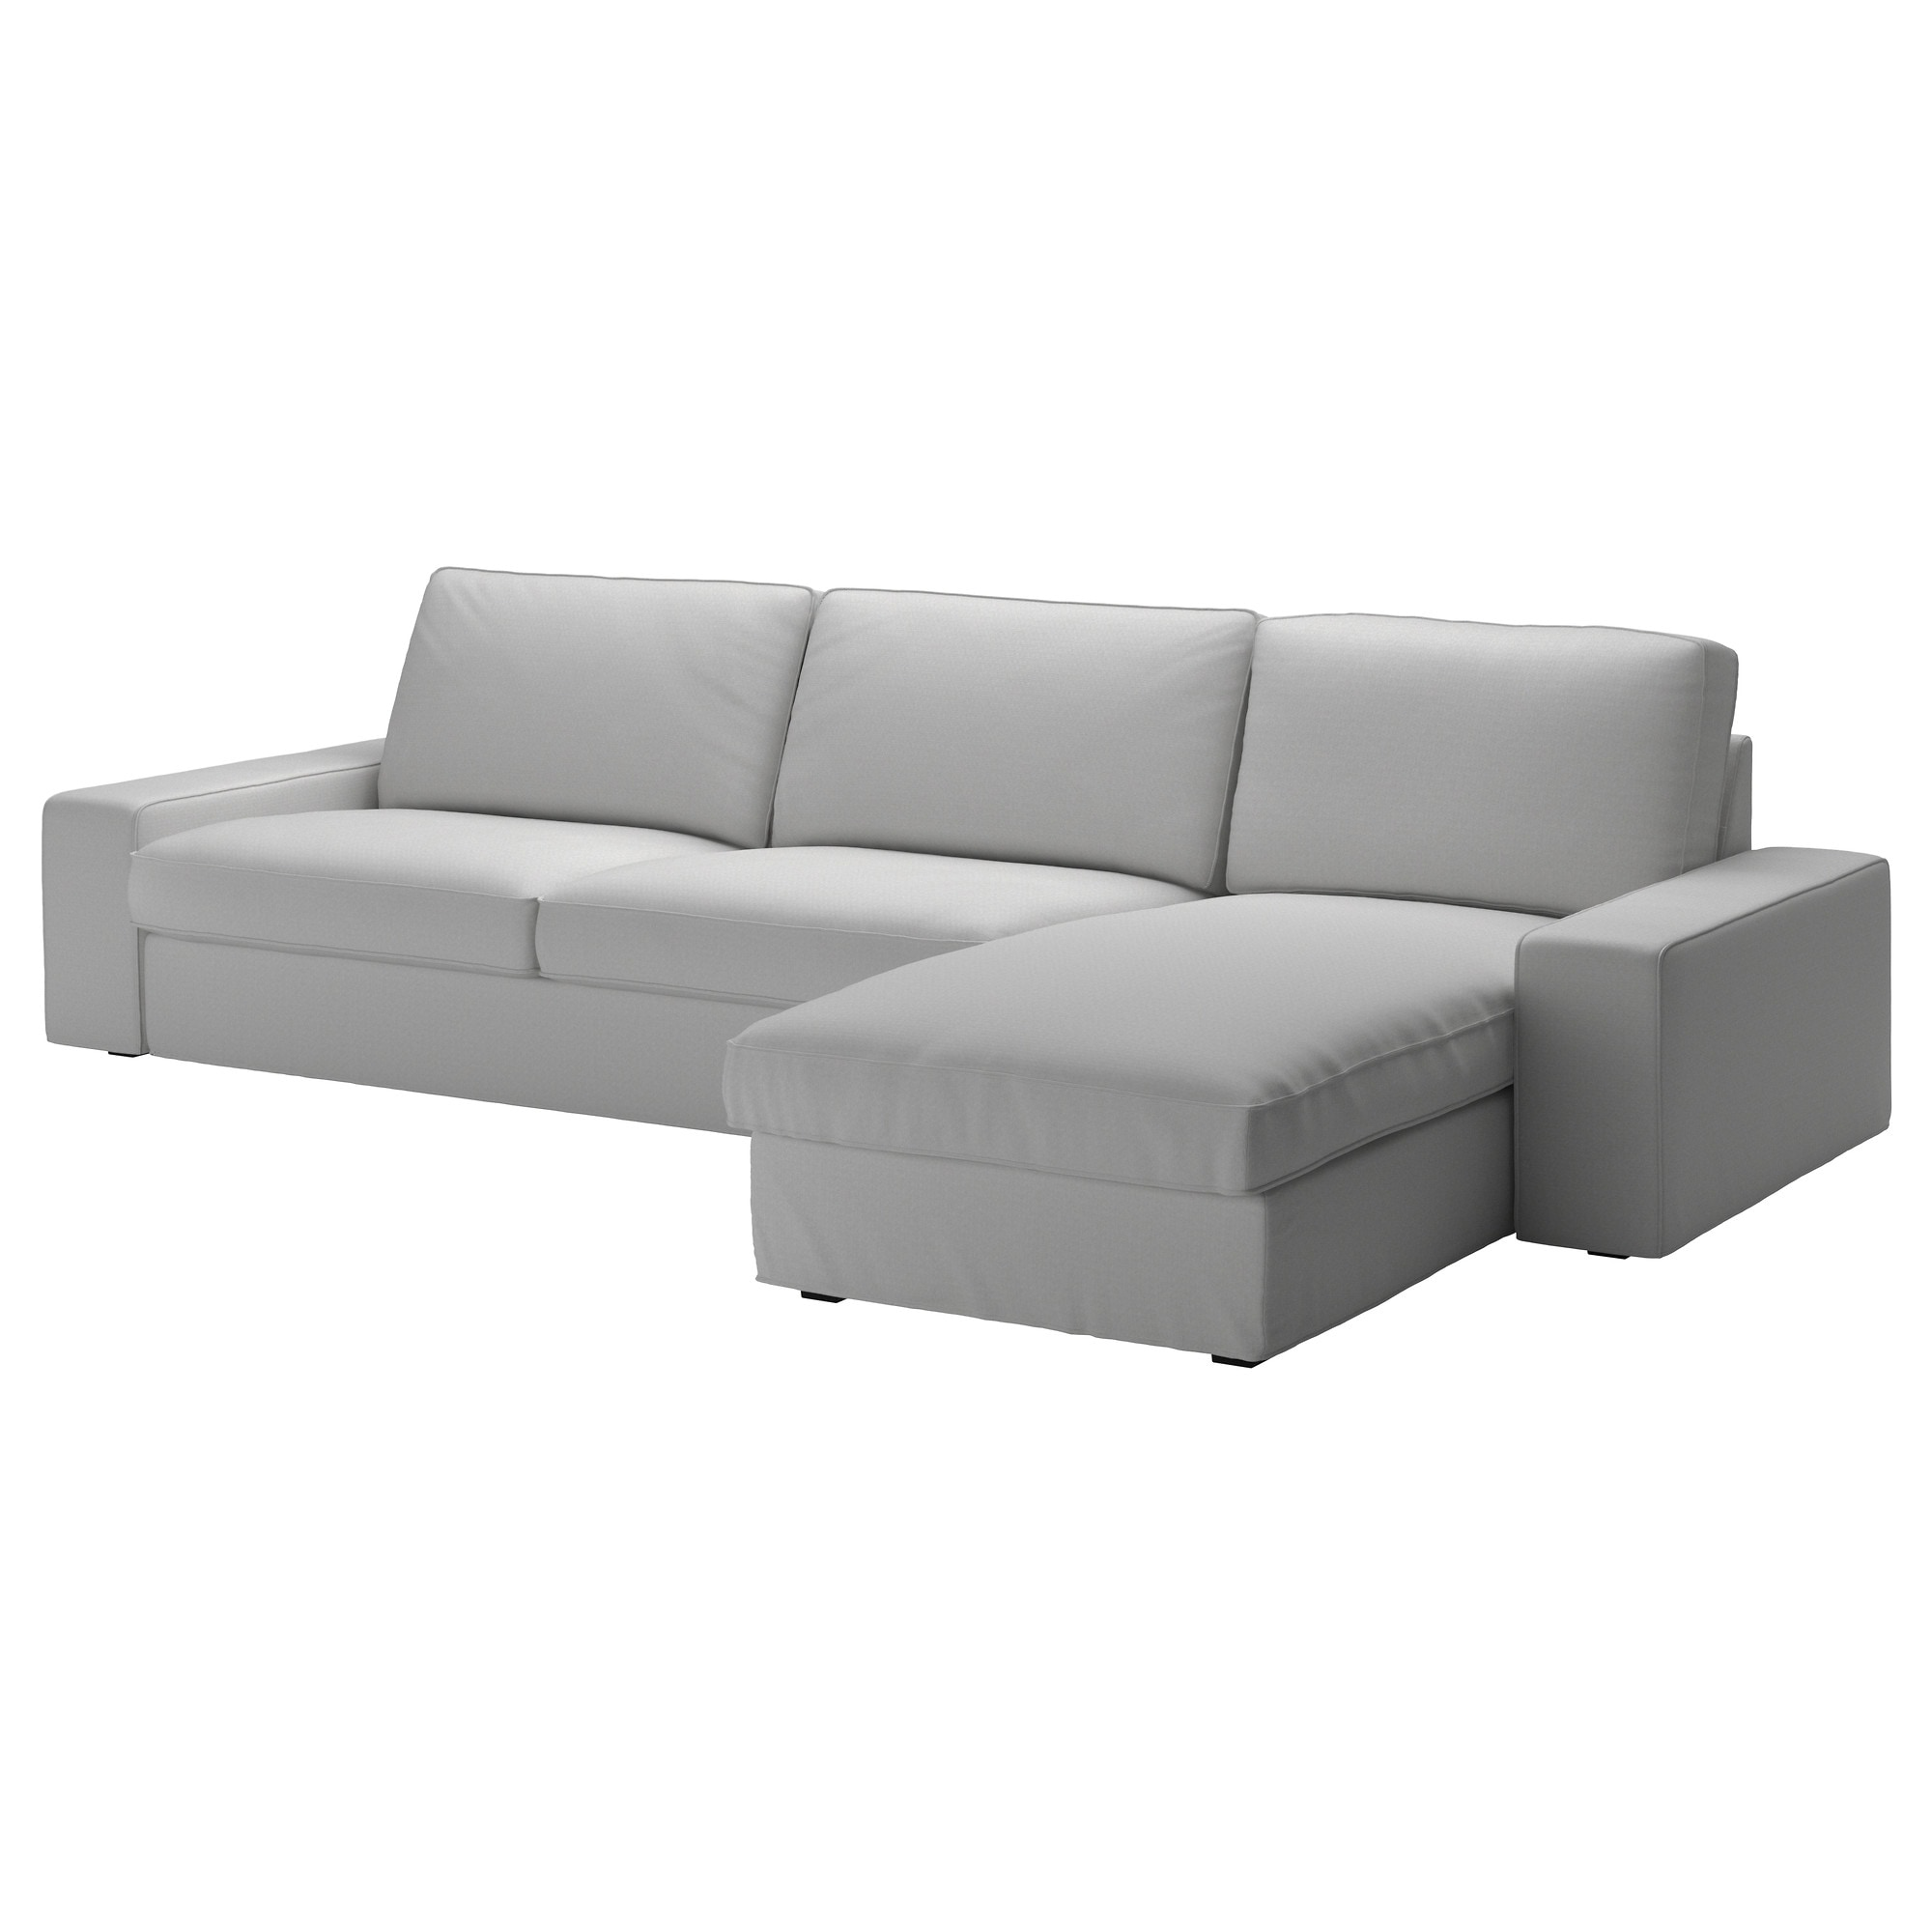 Good KIVIK Sectional, 4 Seat   Orrsta Light Gray   IKEA Part 6